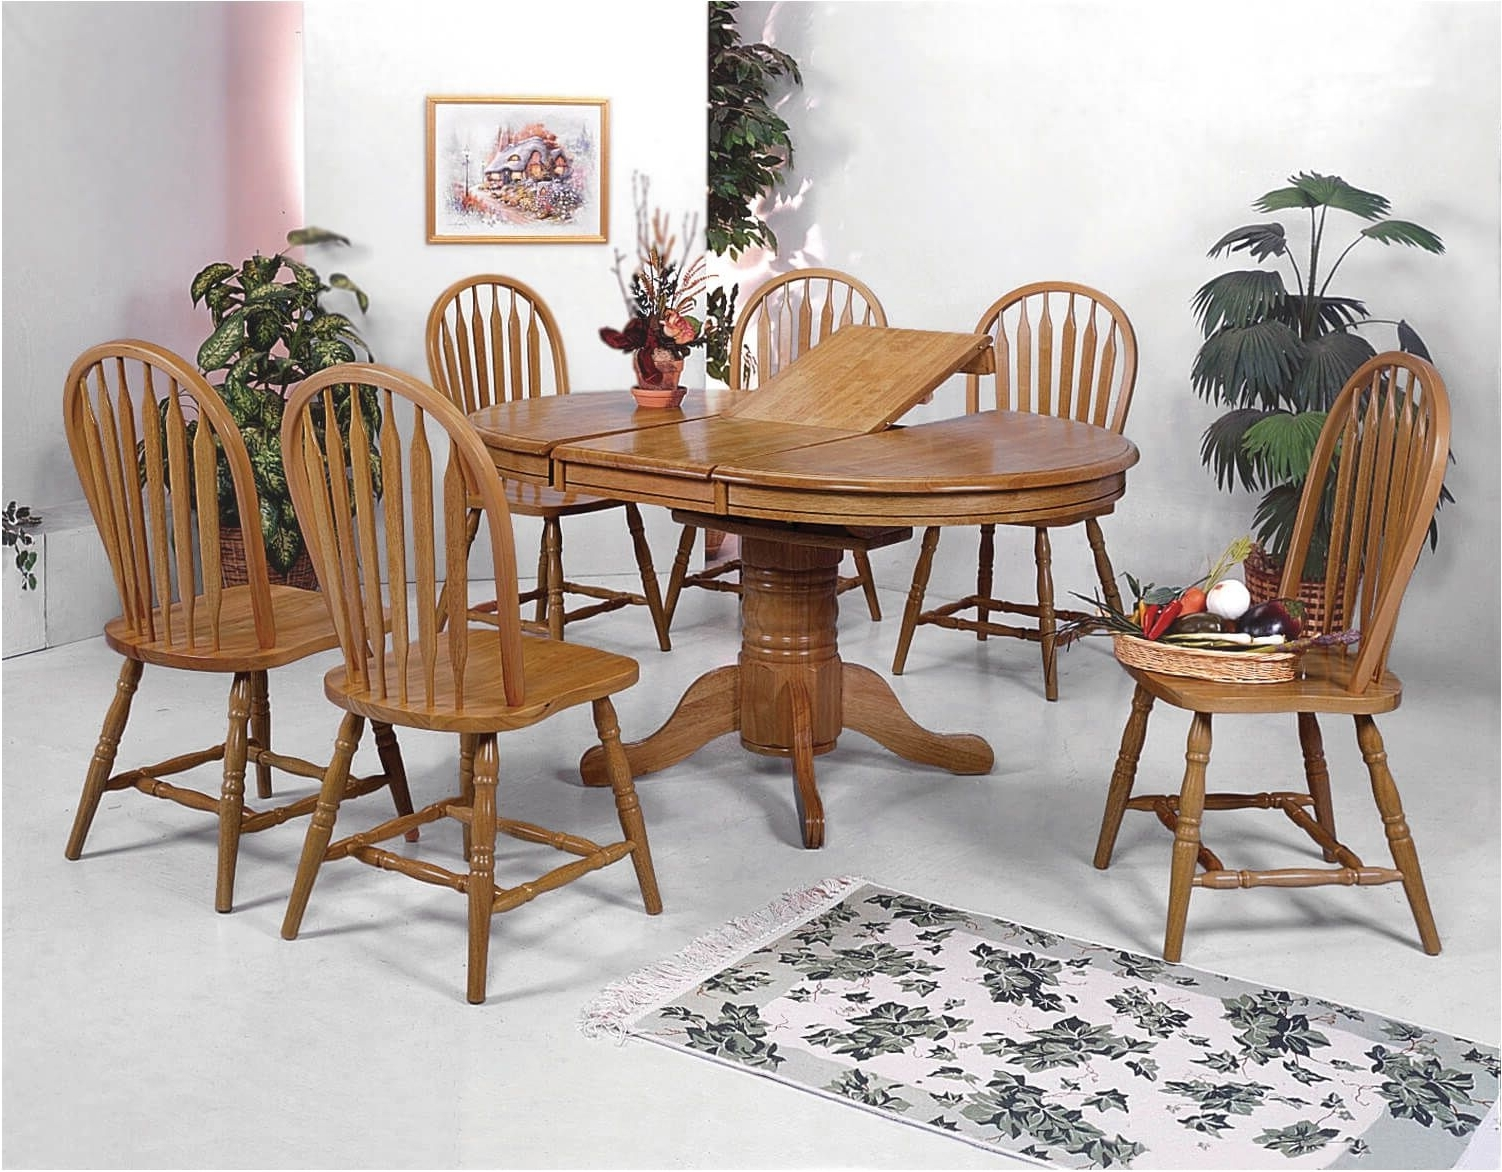 Best Solid Oak Dining Table And 6 Chairs Solid Oak Dining Table And Regarding Trendy Solid Oak Dining Tables And 6 Chairs (View 3 of 25)